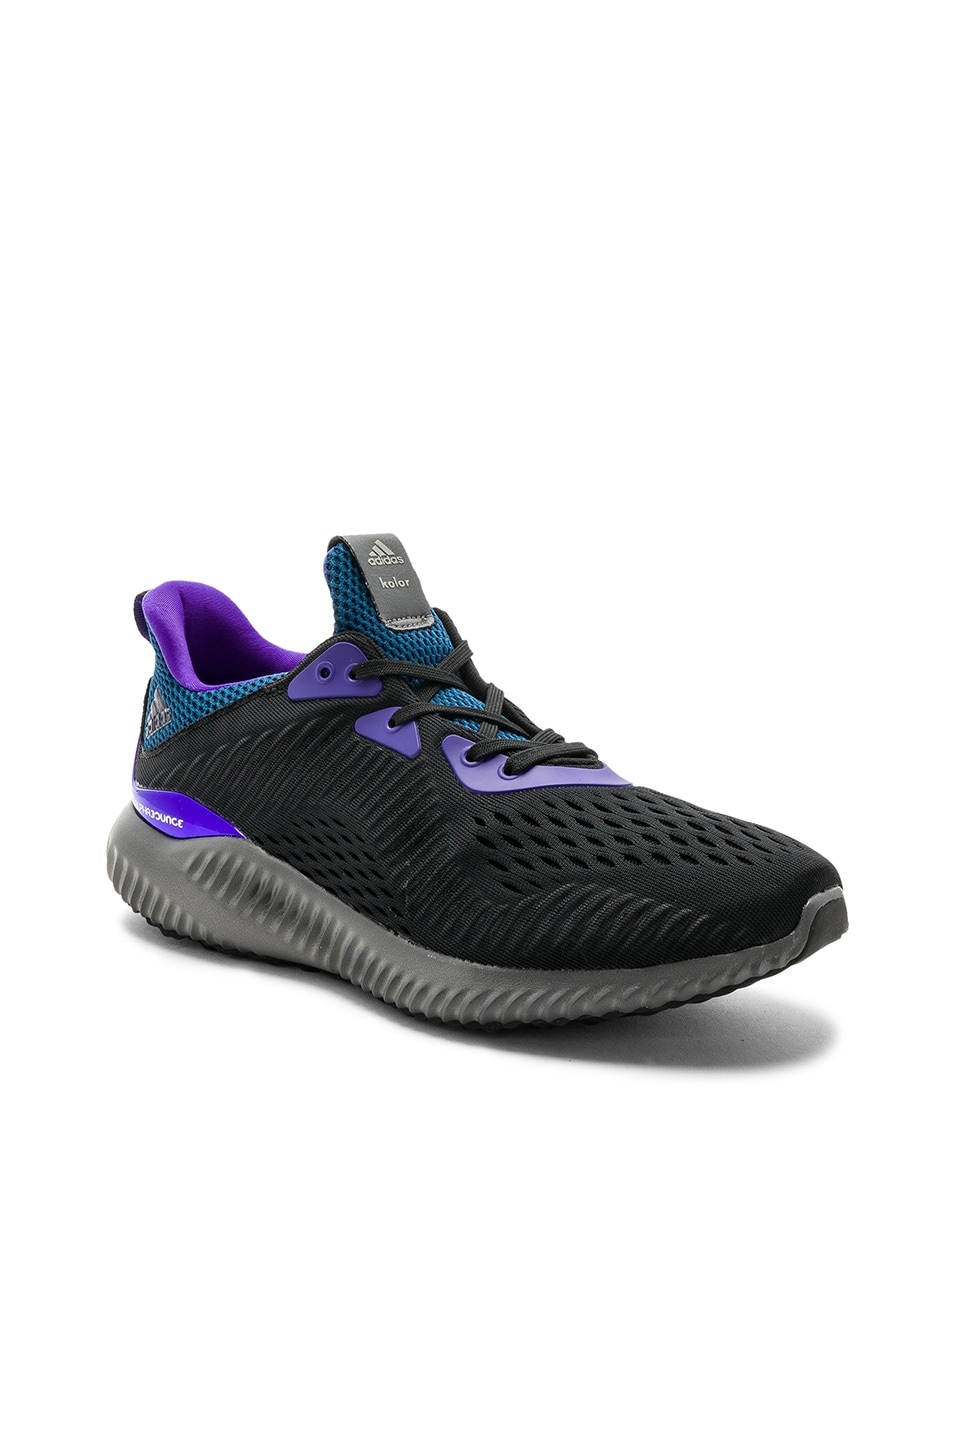 819fd8ce826a5 Image 1 of kolor x Adidas alphabounce 1 KOLOR in Core Black   Grey Five